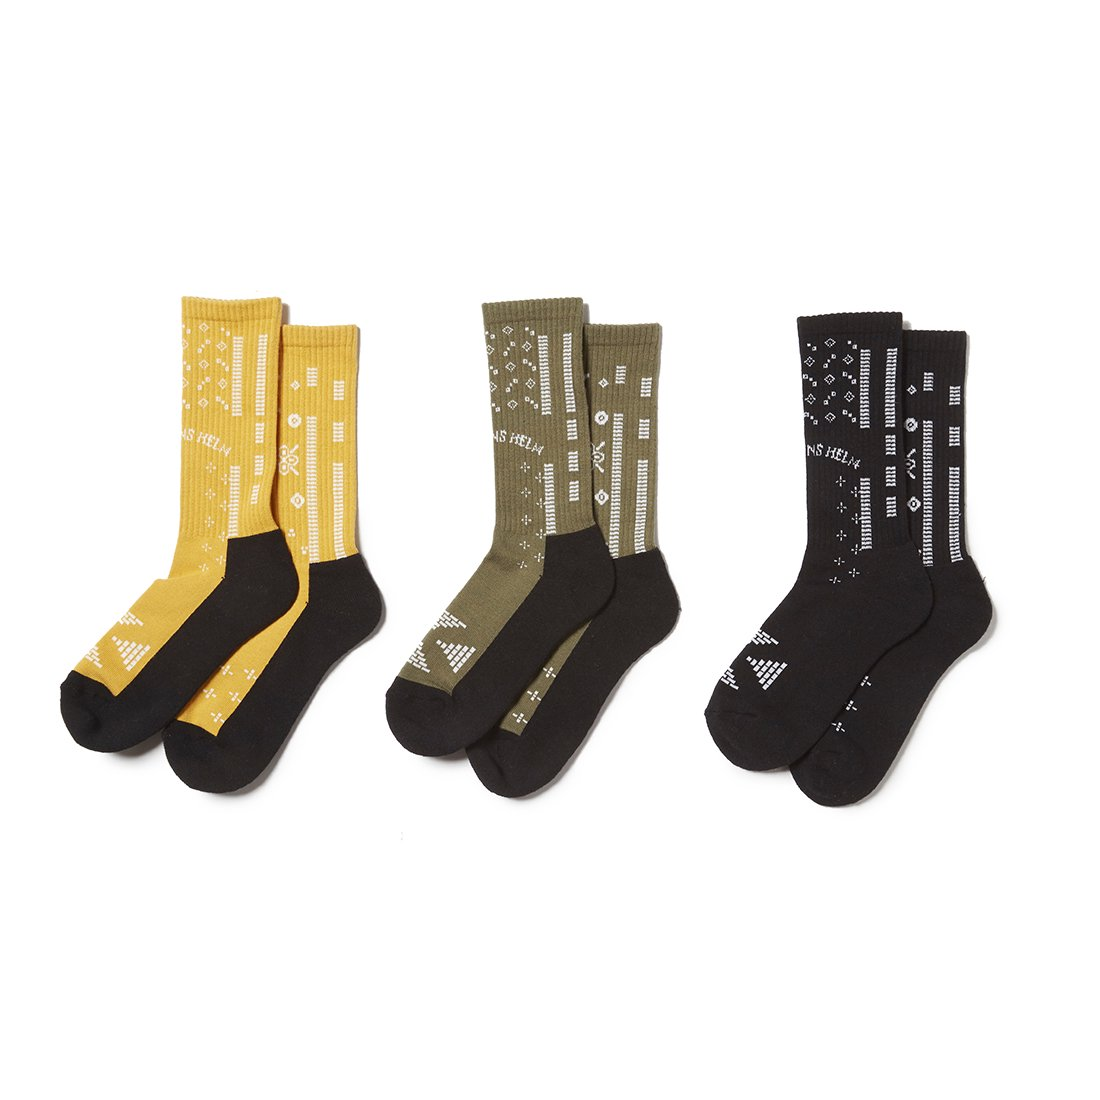 CAPTAINS HELM #BANDANA SOCKS